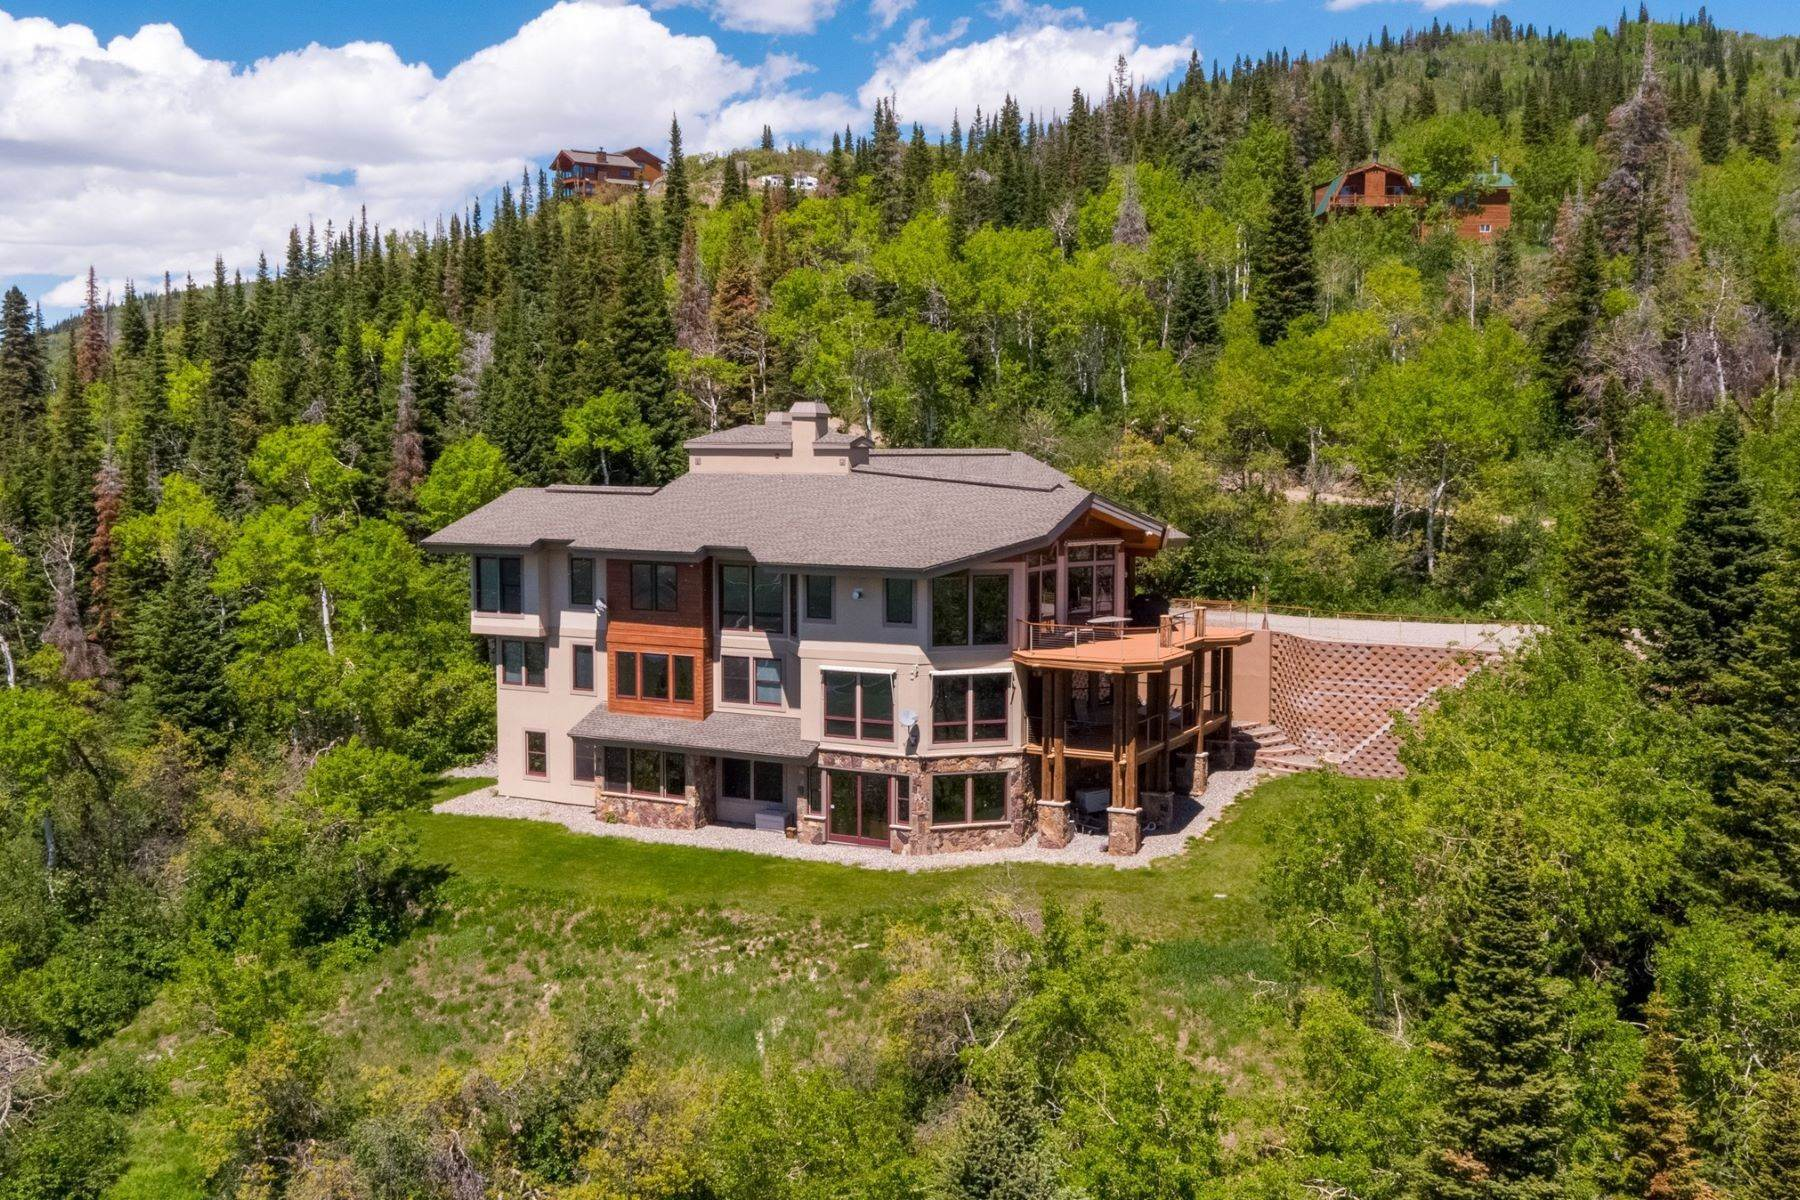 Property en Star Ridge Estate 31165 Star Ridge Road Steamboat Springs, Colorado 80487 Estados Unidos